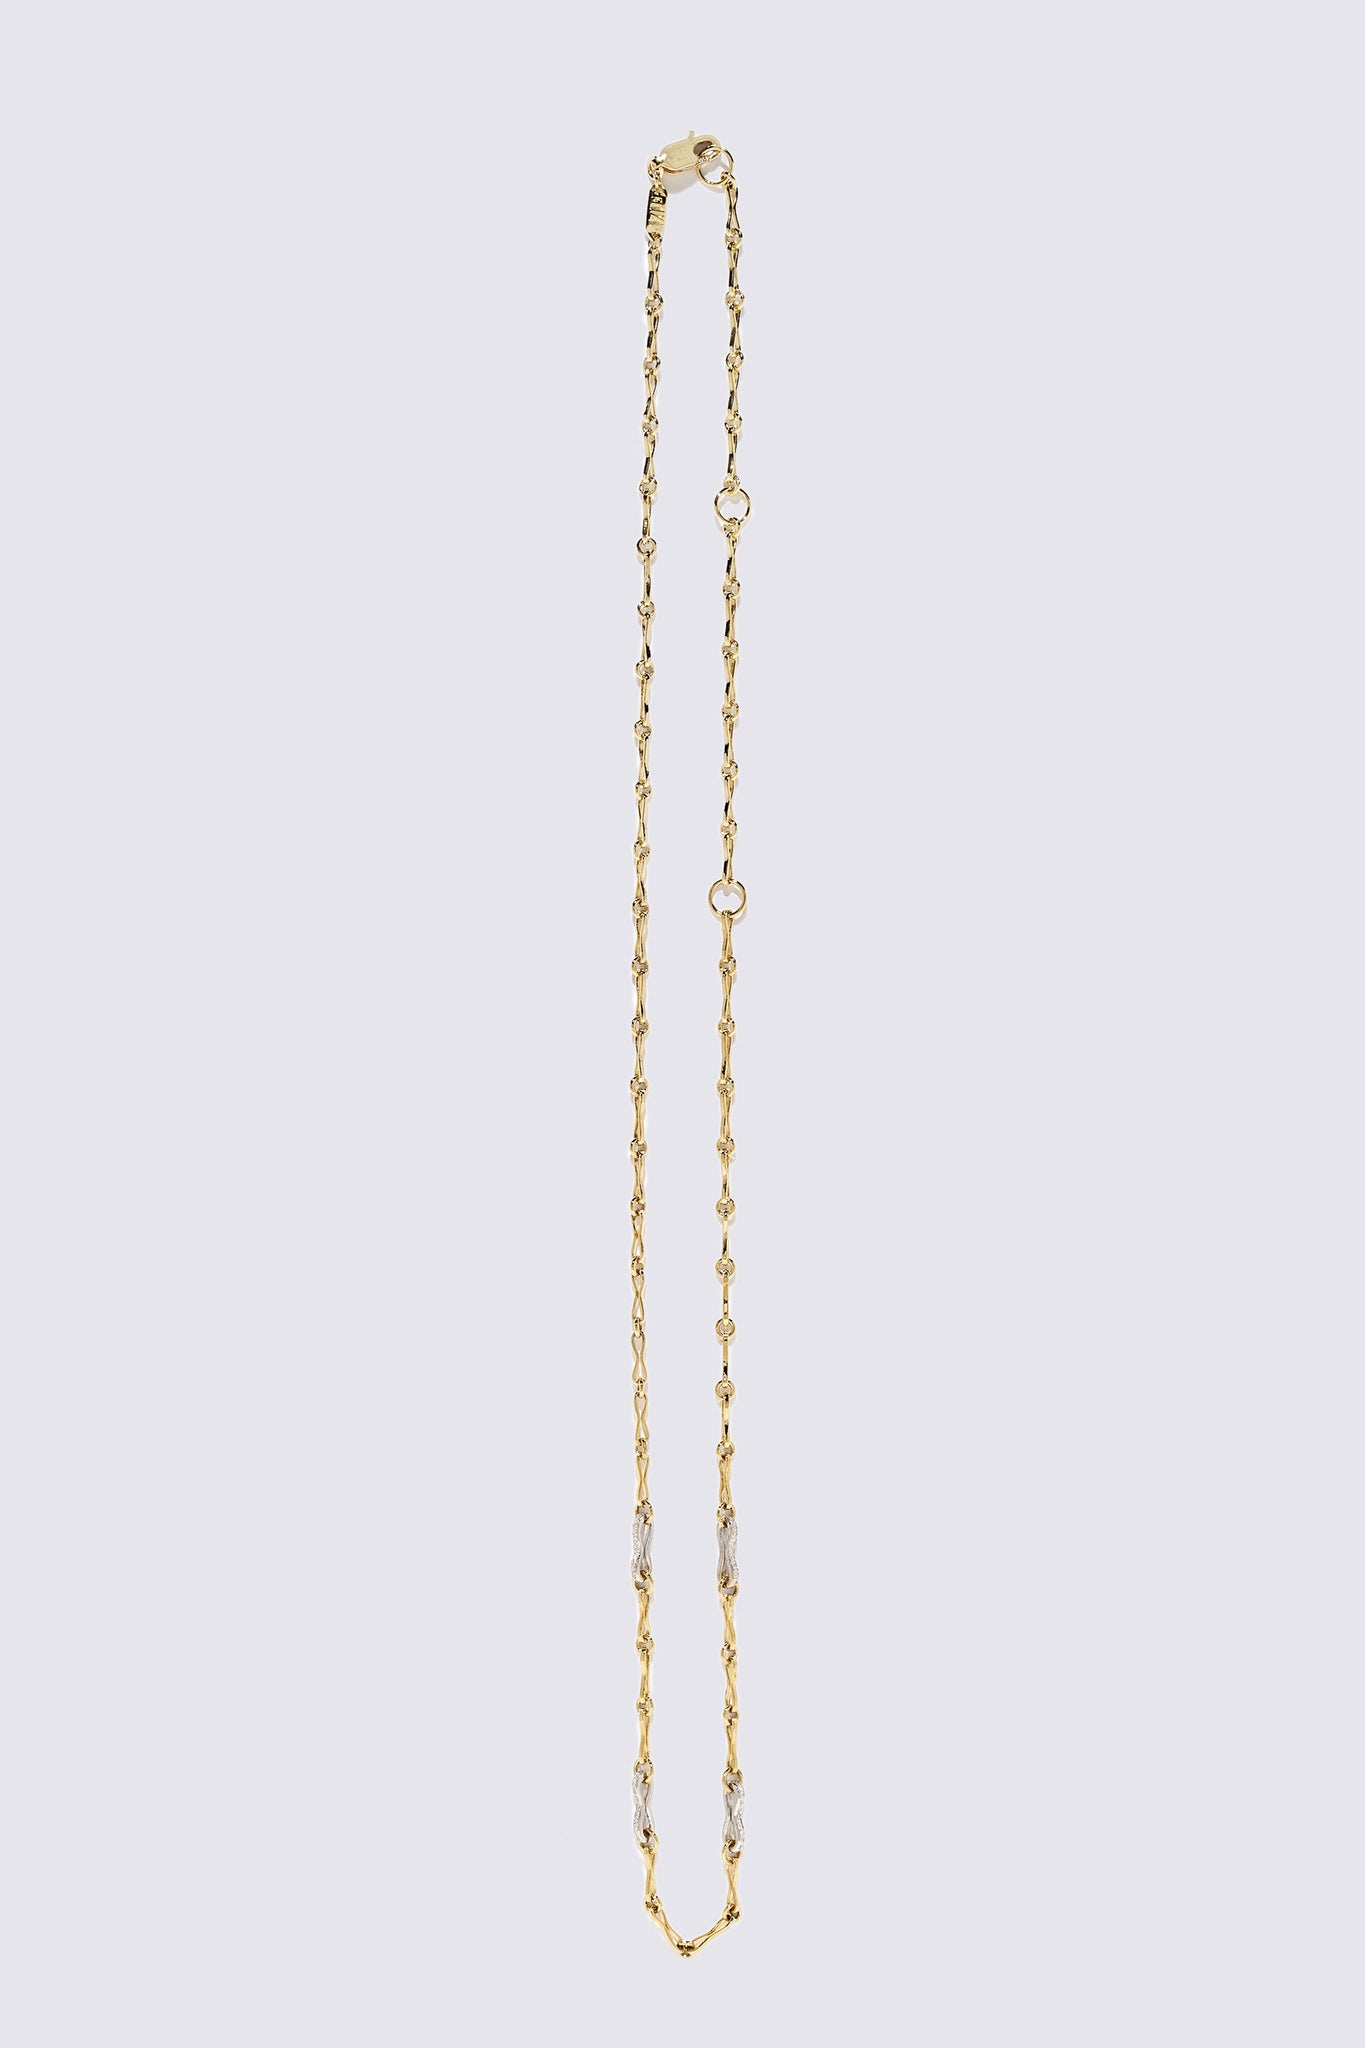 AZLEE - Small Circle Link Chain with Pave Links, Gold